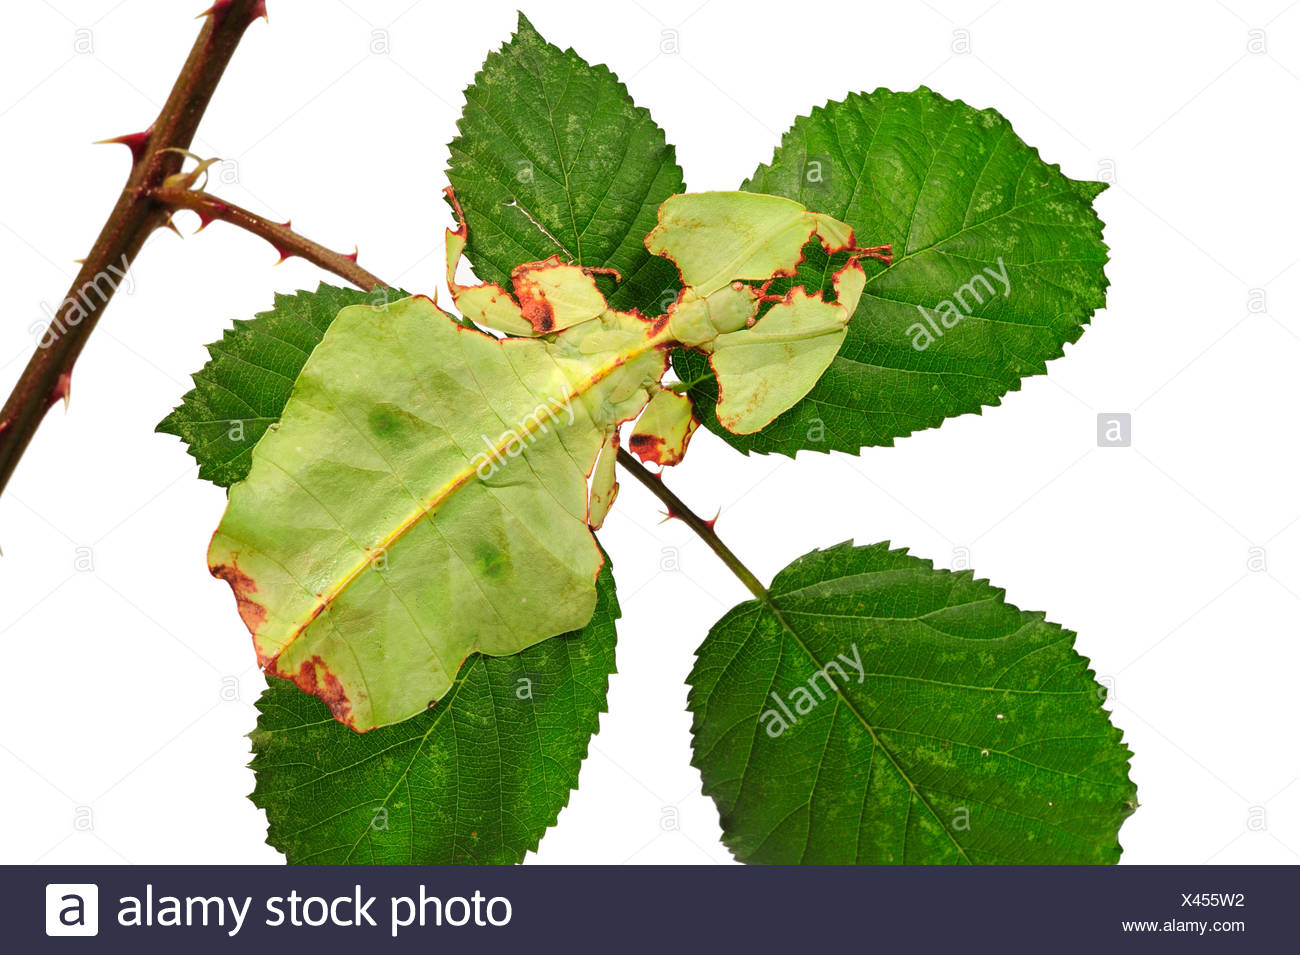 Celebes Leaf Insect, leaf insect, walking leave (Phyllium celebicum), female on blackberry leaf, cut out Stock Photo